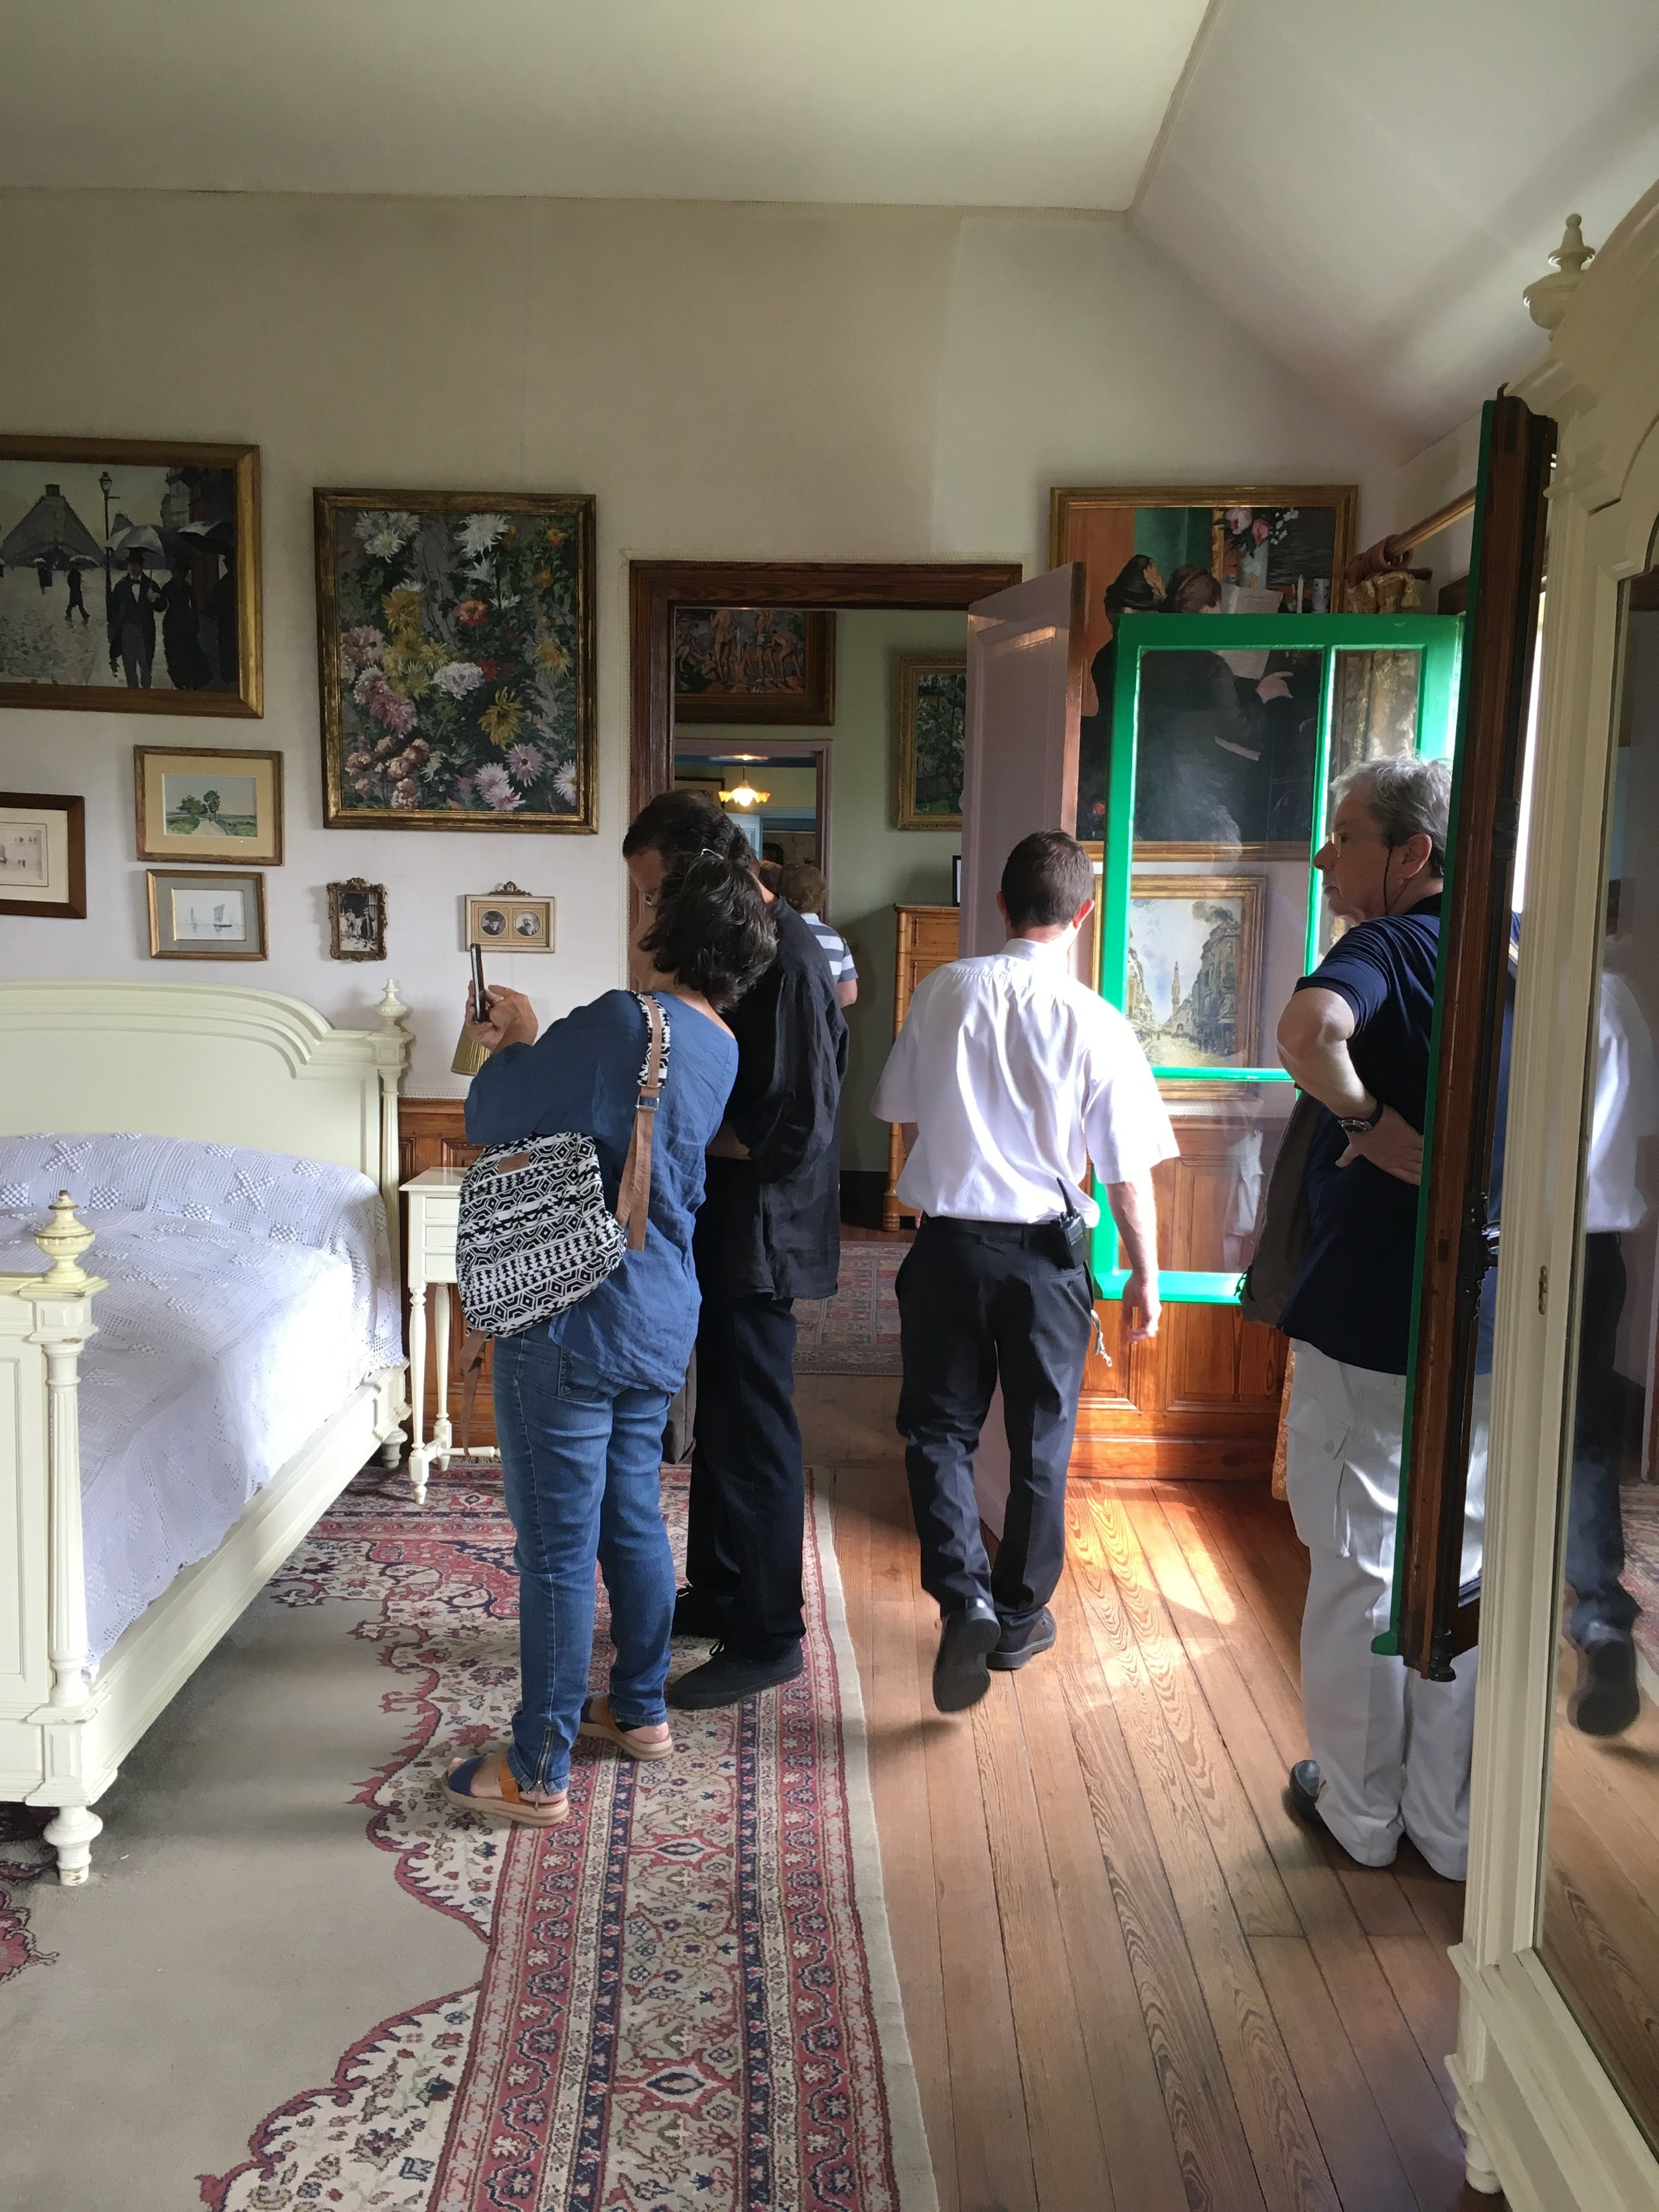 The inside of Monet's house is as popular as the gardens.